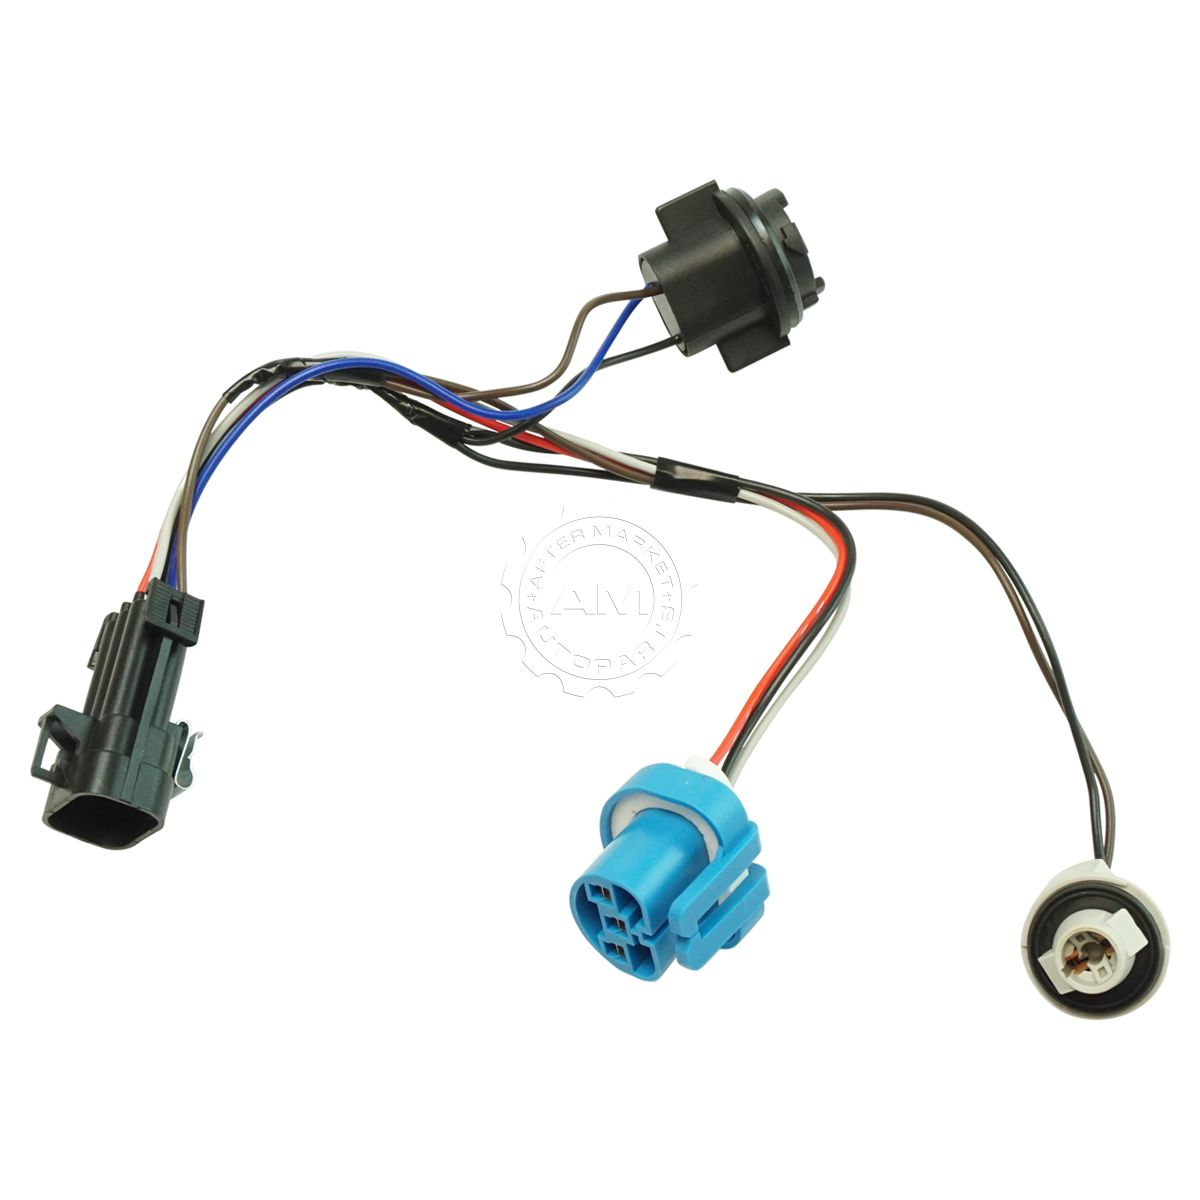 dorman headlight wiring harness or side for chevy cobalt pontiac g5 rh ebay com headlight wiring harness 1940 ford truck headlight wiring harness 2012 focus